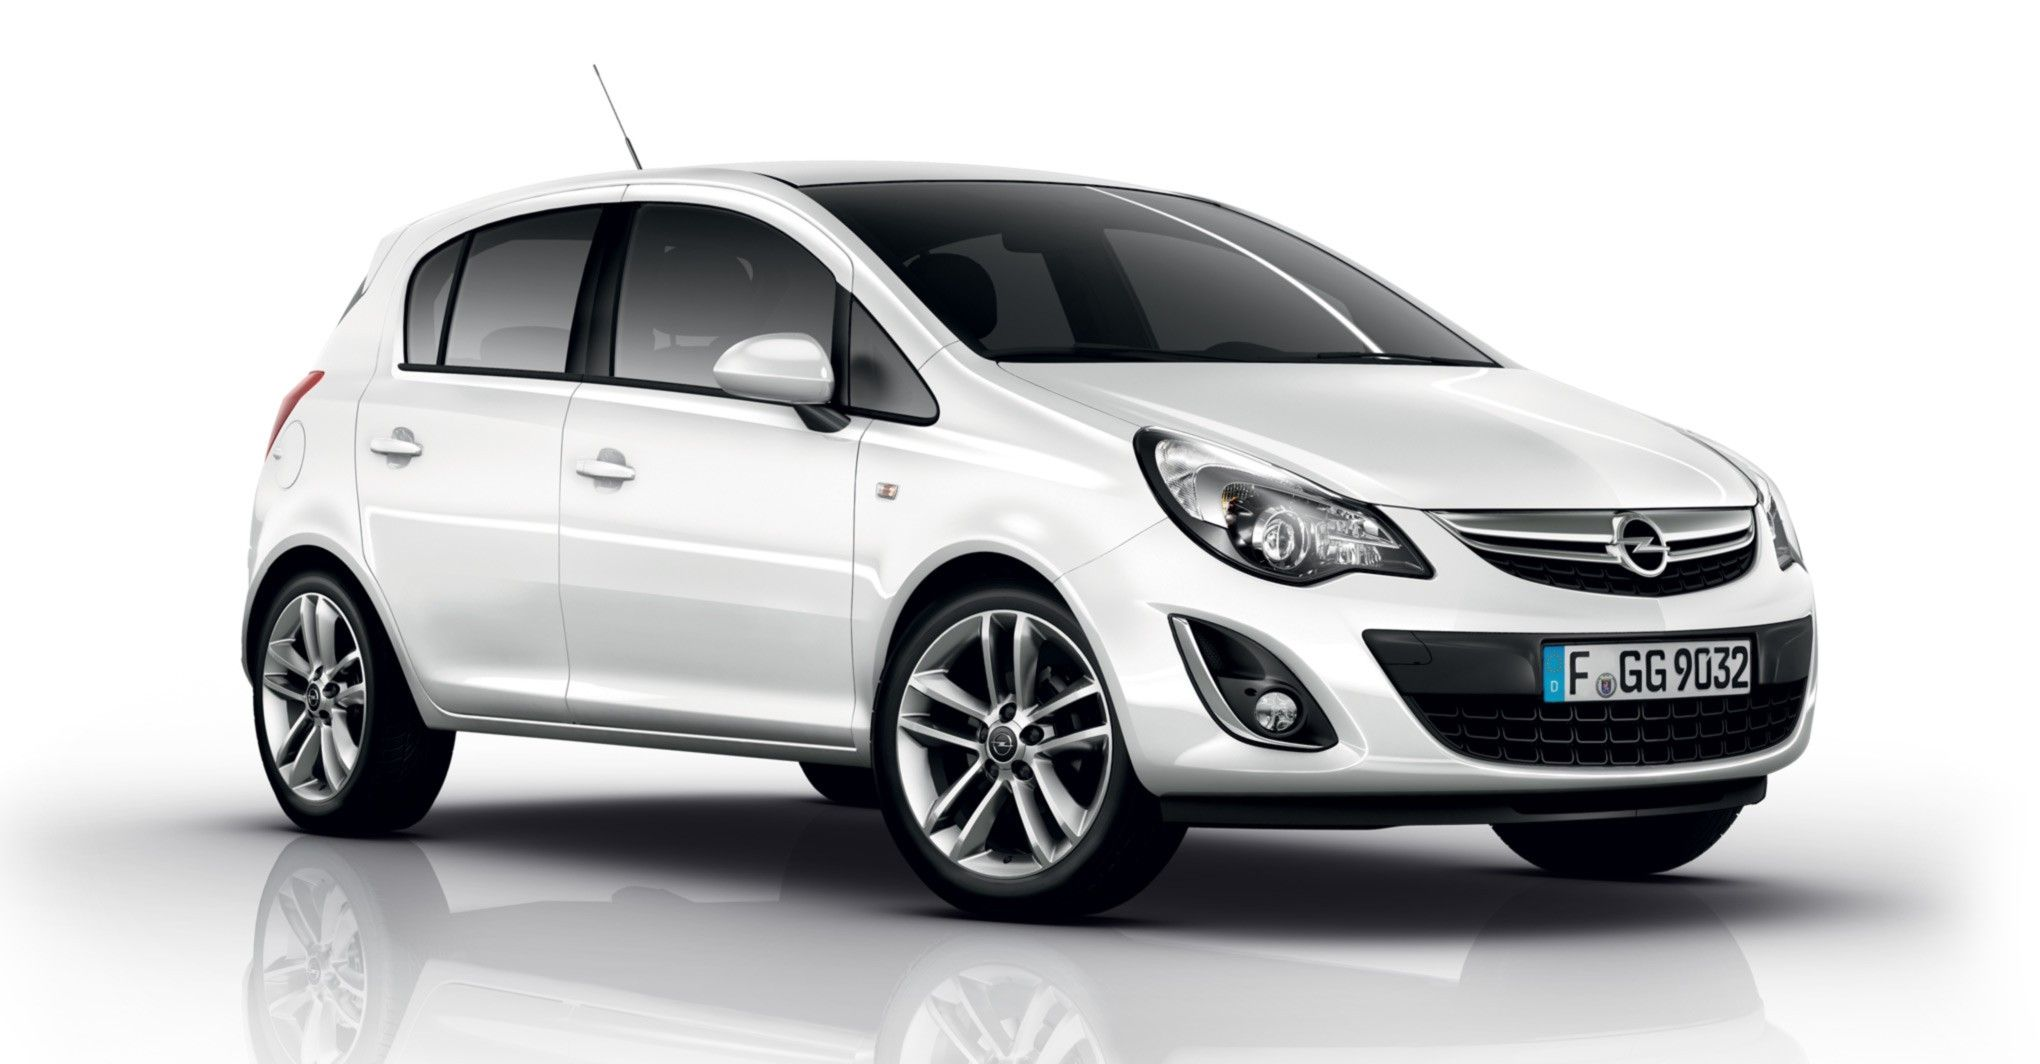 Pin By Cleopatra Tharrenou On Opel Corsa D 2007 2014 Car Rent A Car Car Rental